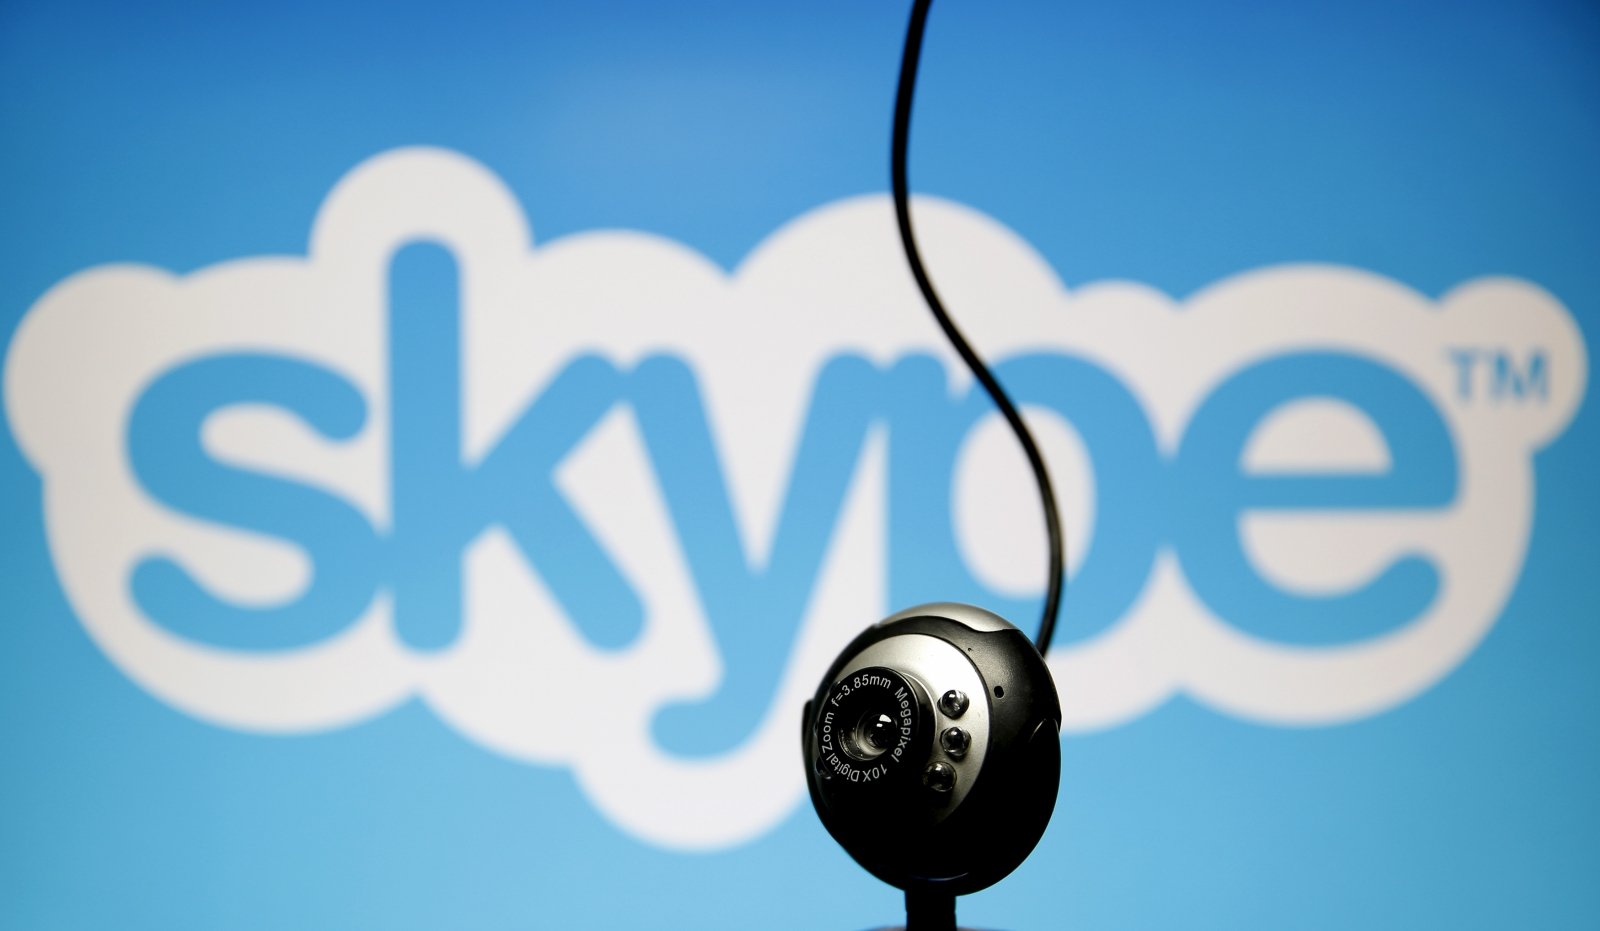 Skype messaging app